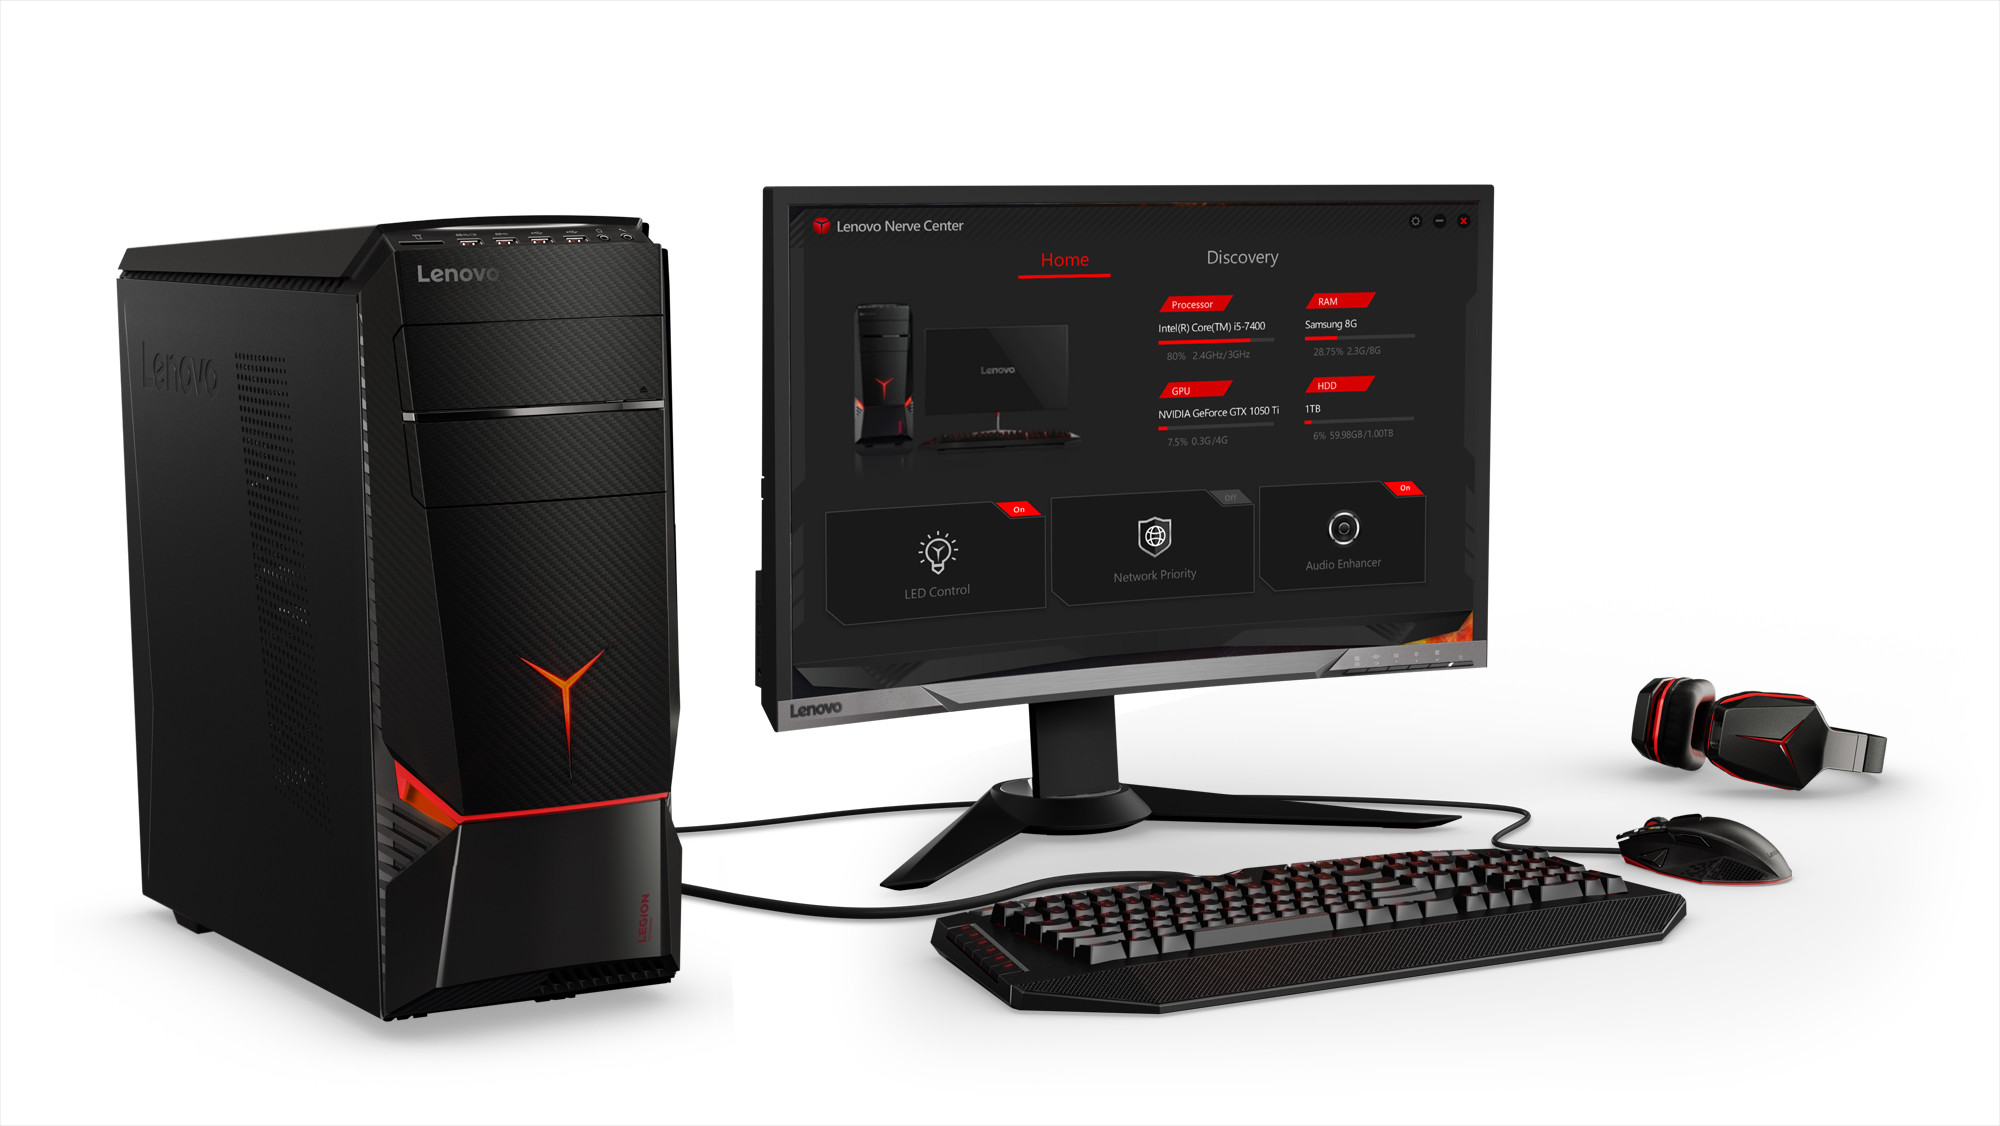 New Legion Gaming Towers From Lenovo Are VR-Ready